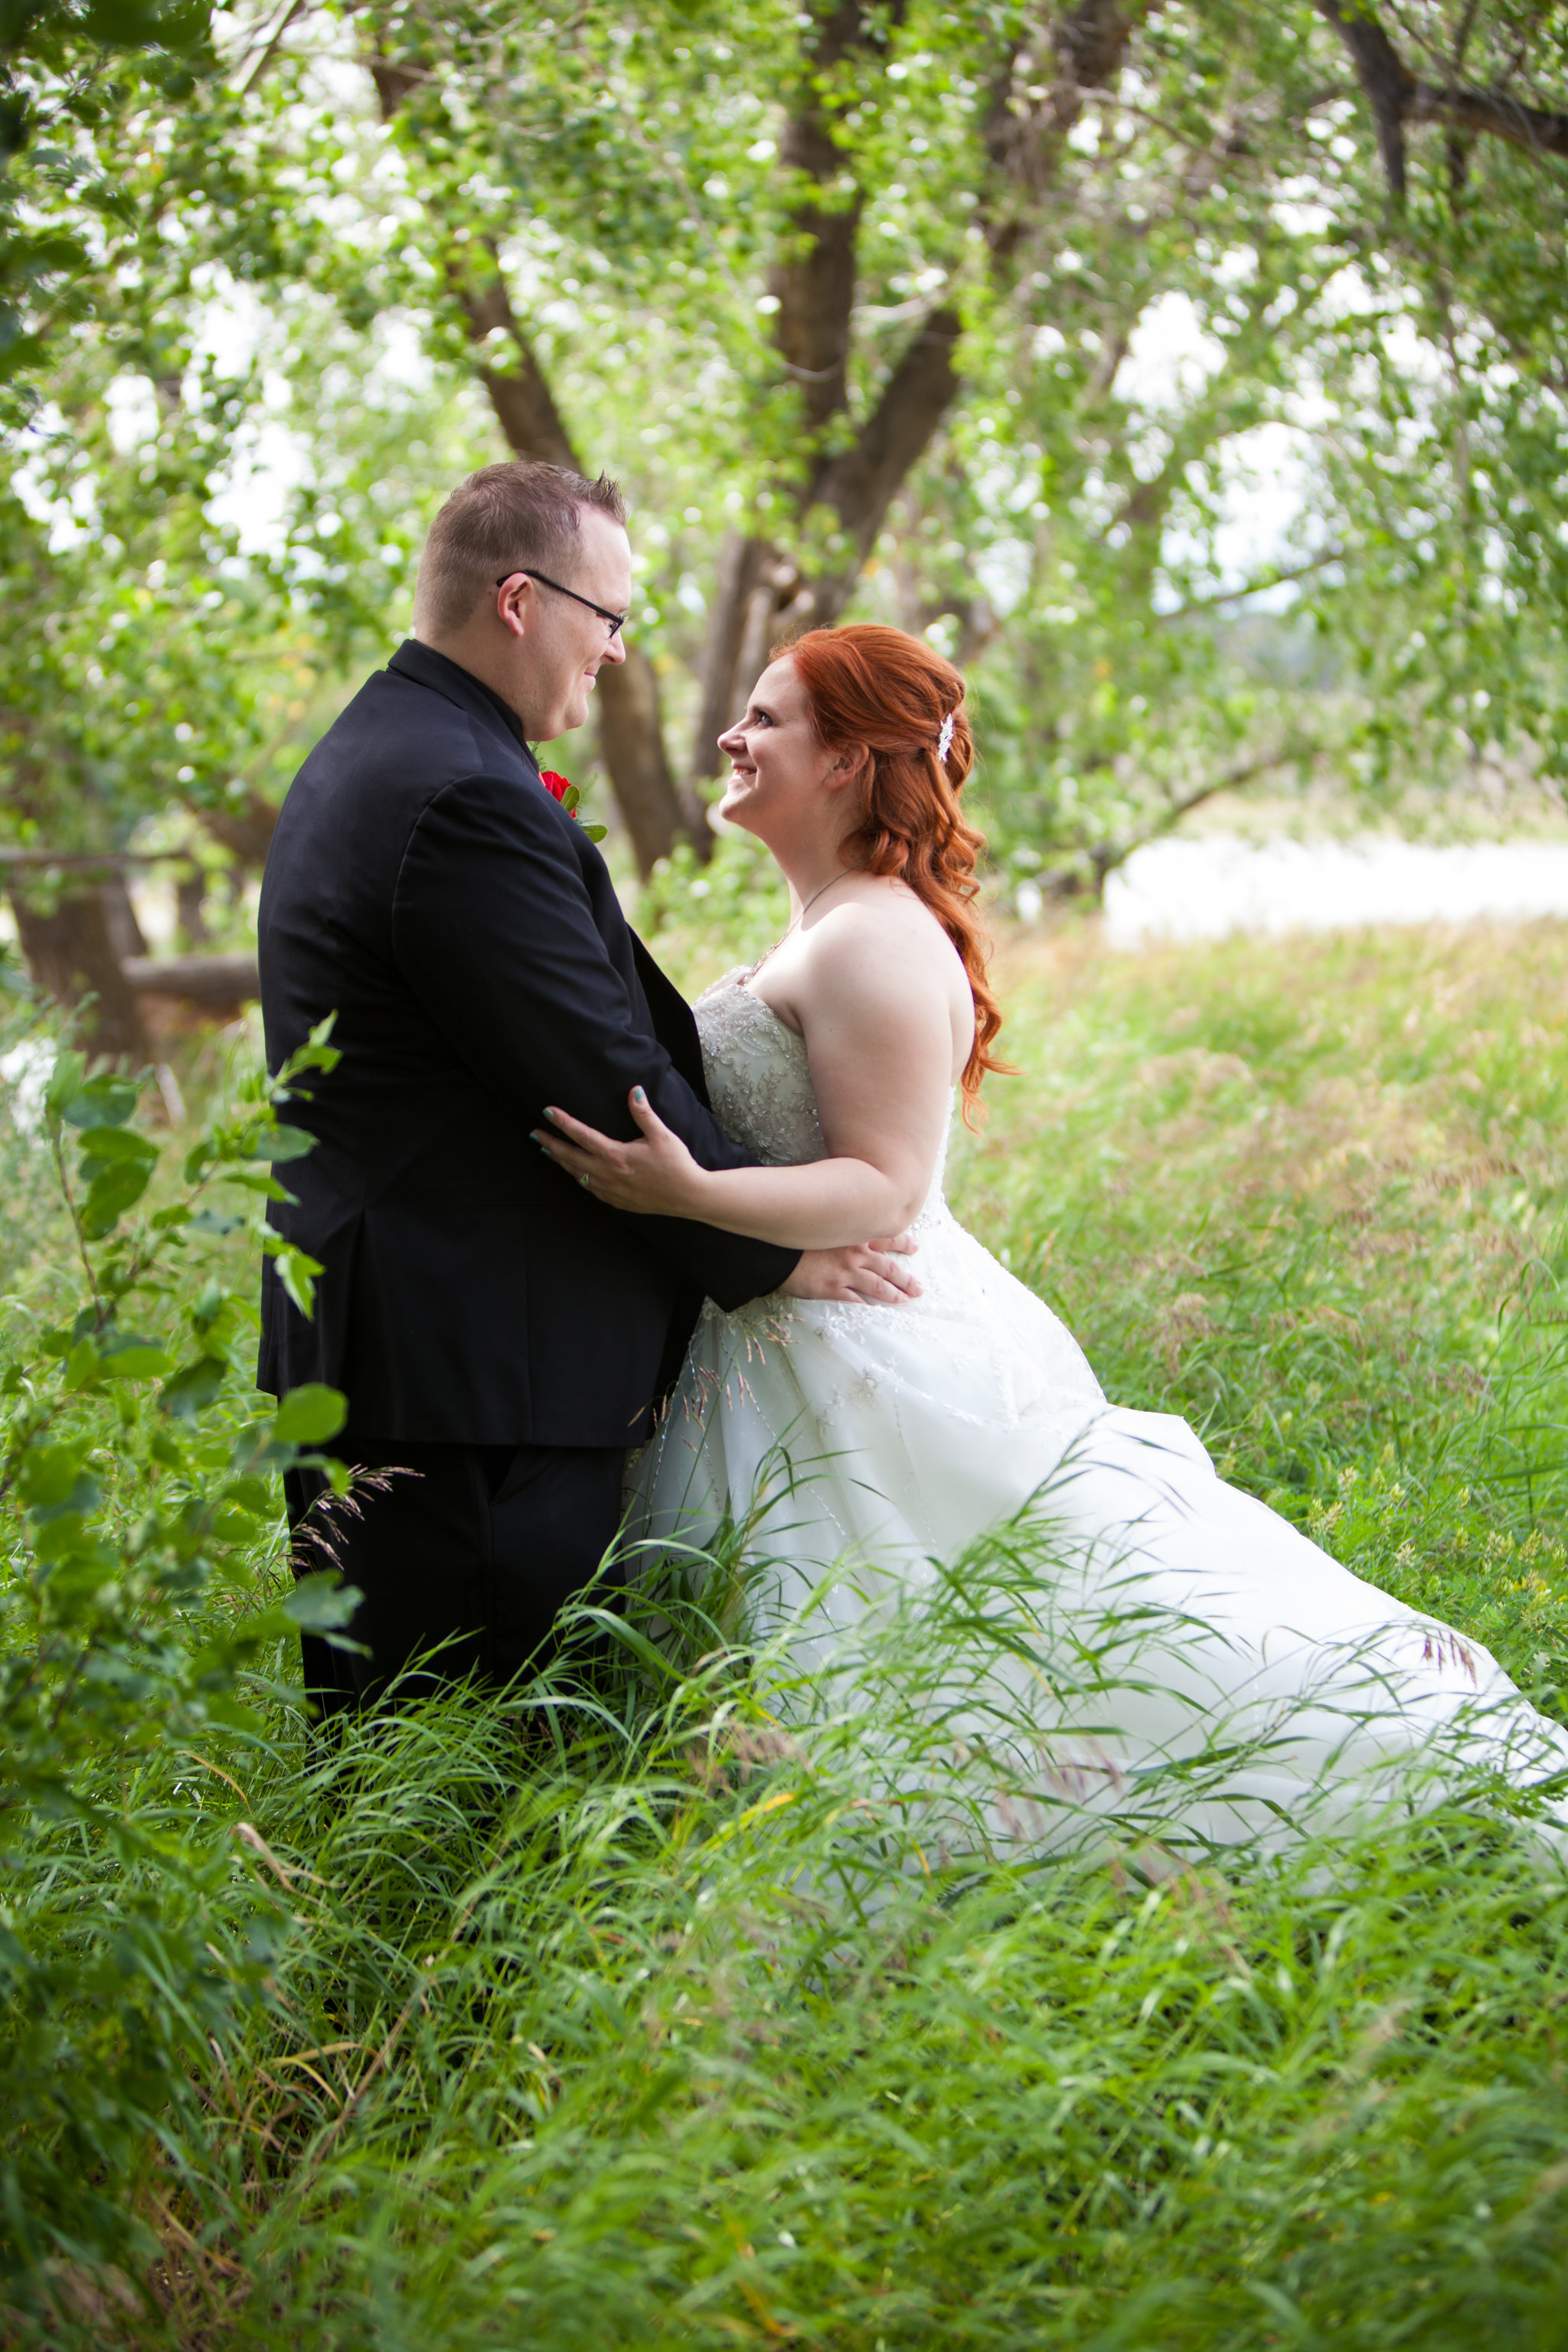 Medicine Hat Photography, Medicine Hat Wedding Photographer, Medicine Hat Wedding Photography, Saskatchewan Wedding Photographer, Lethbridge Wedding Photography, Star Wars Wedding, LOTR Wedding